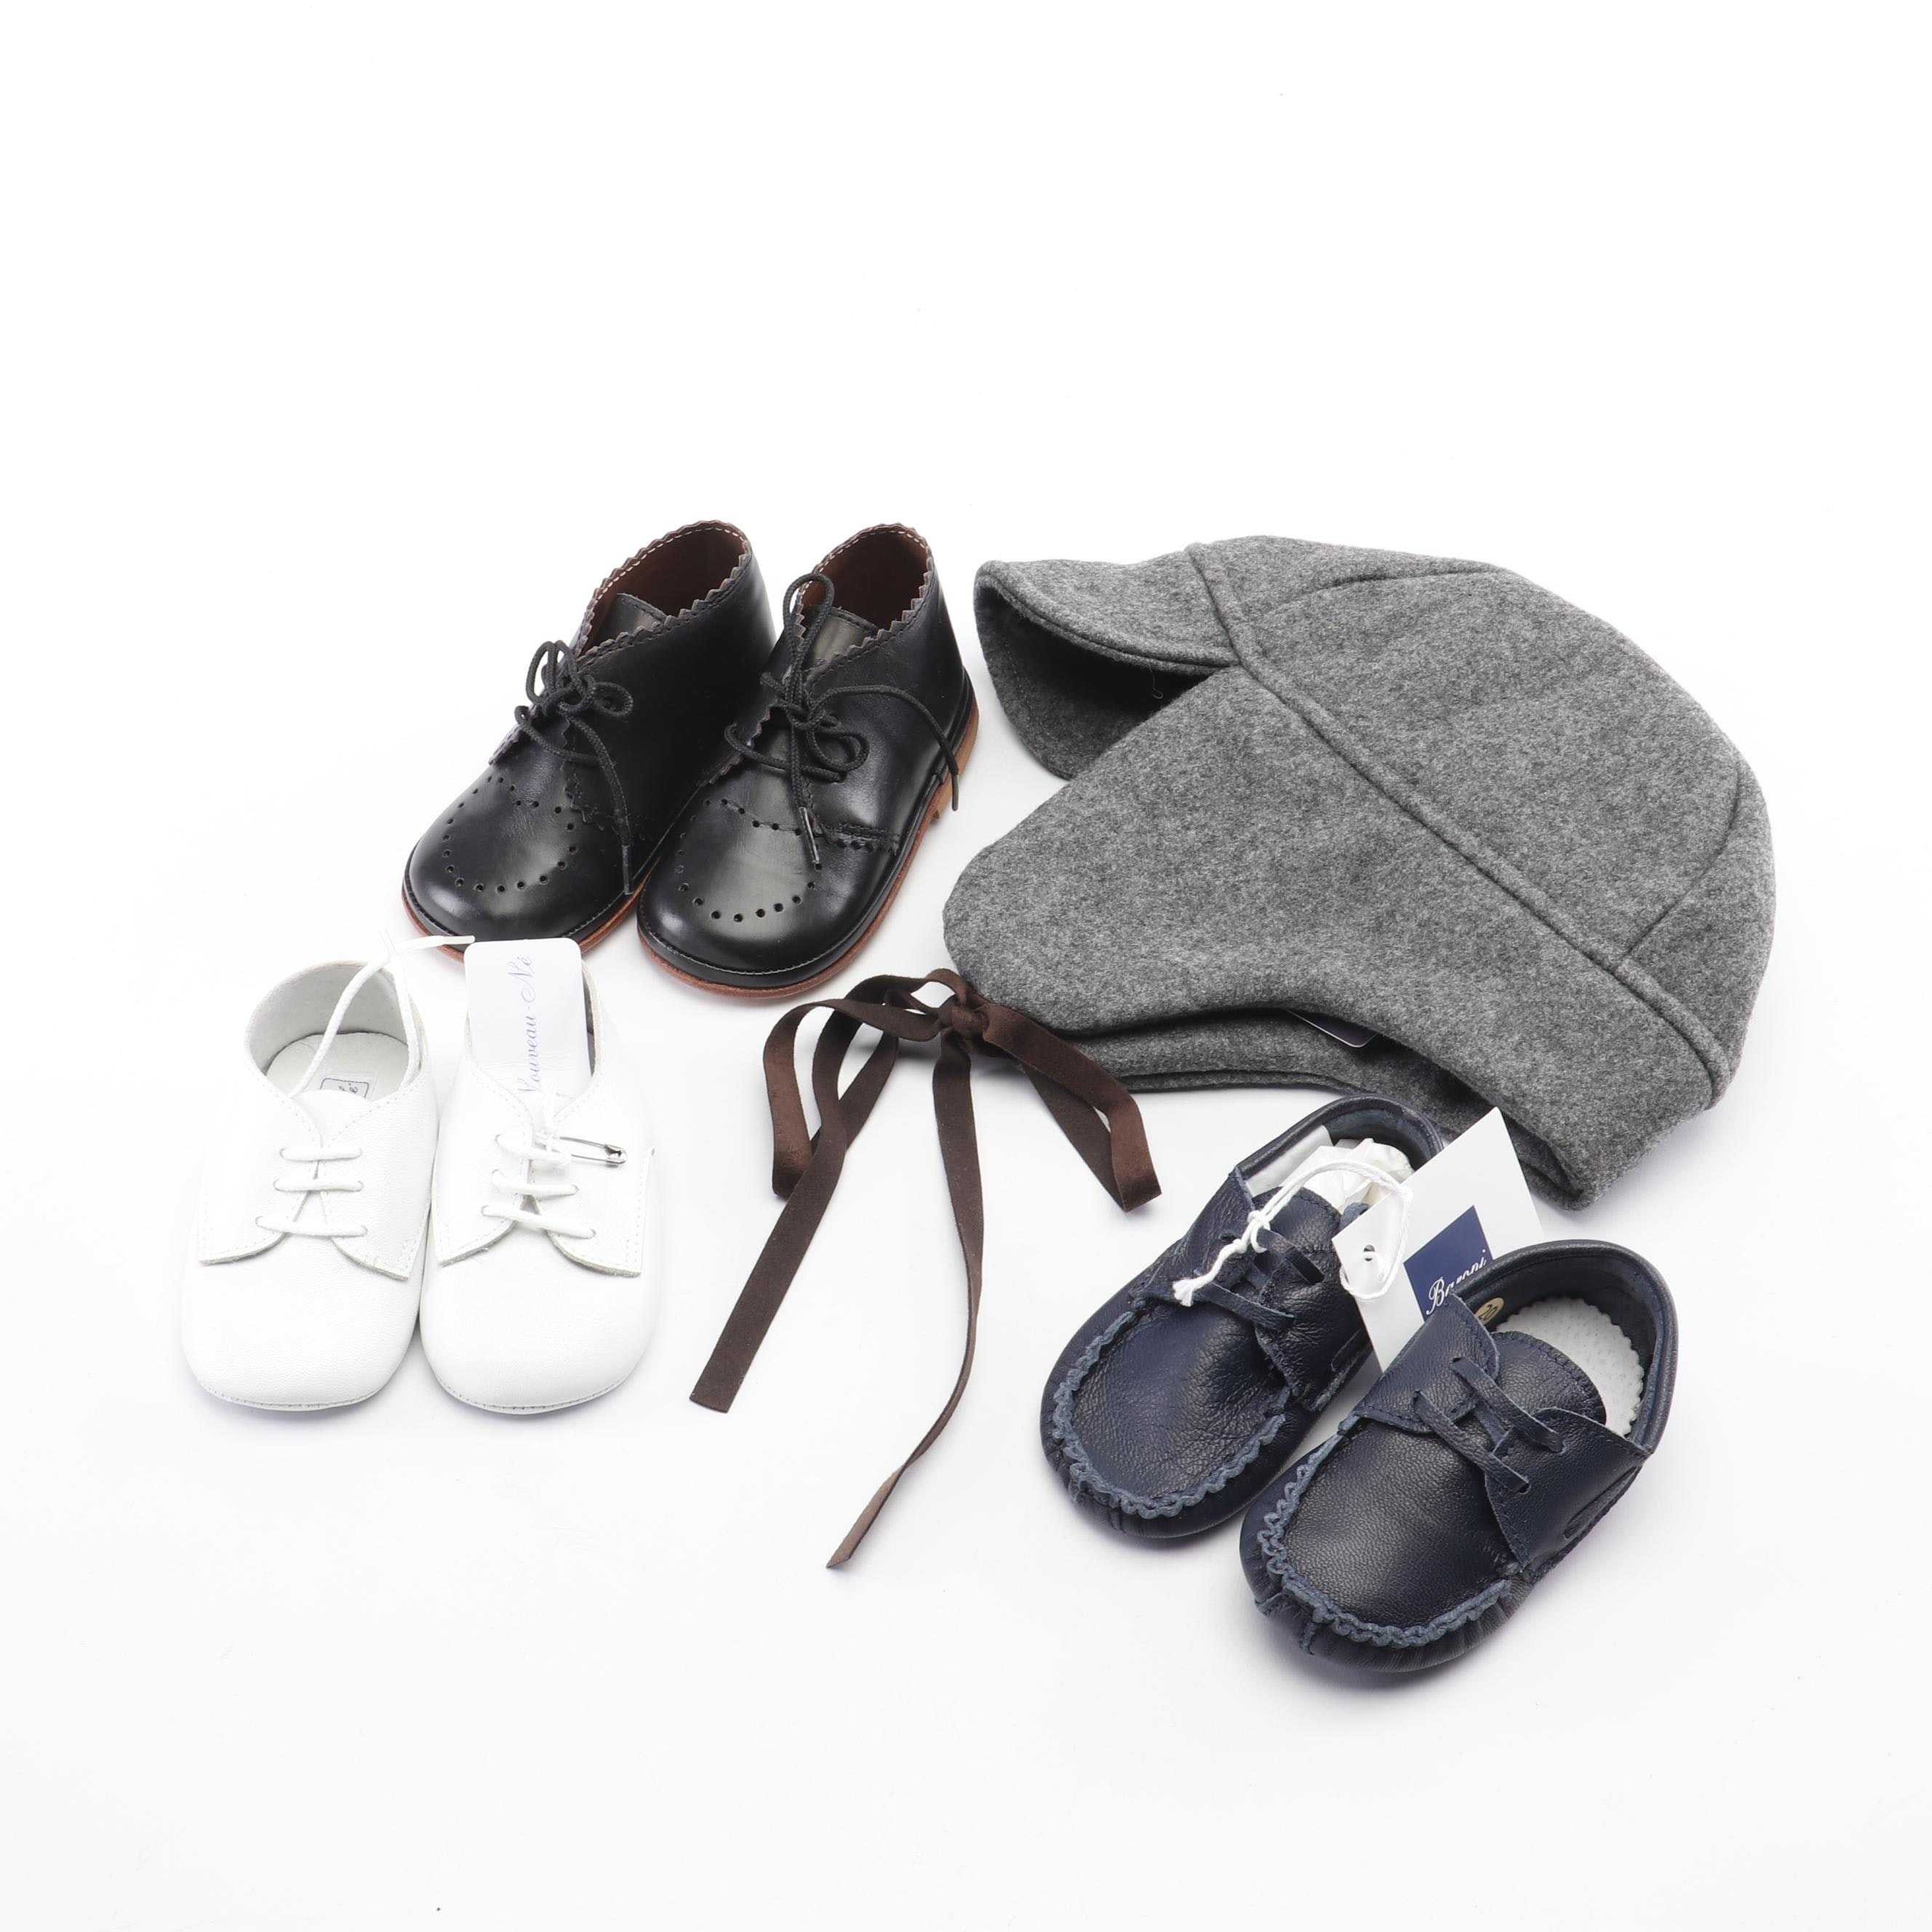 Children's Leather Shoes and Wool Hat Including Odile La Stupenderia